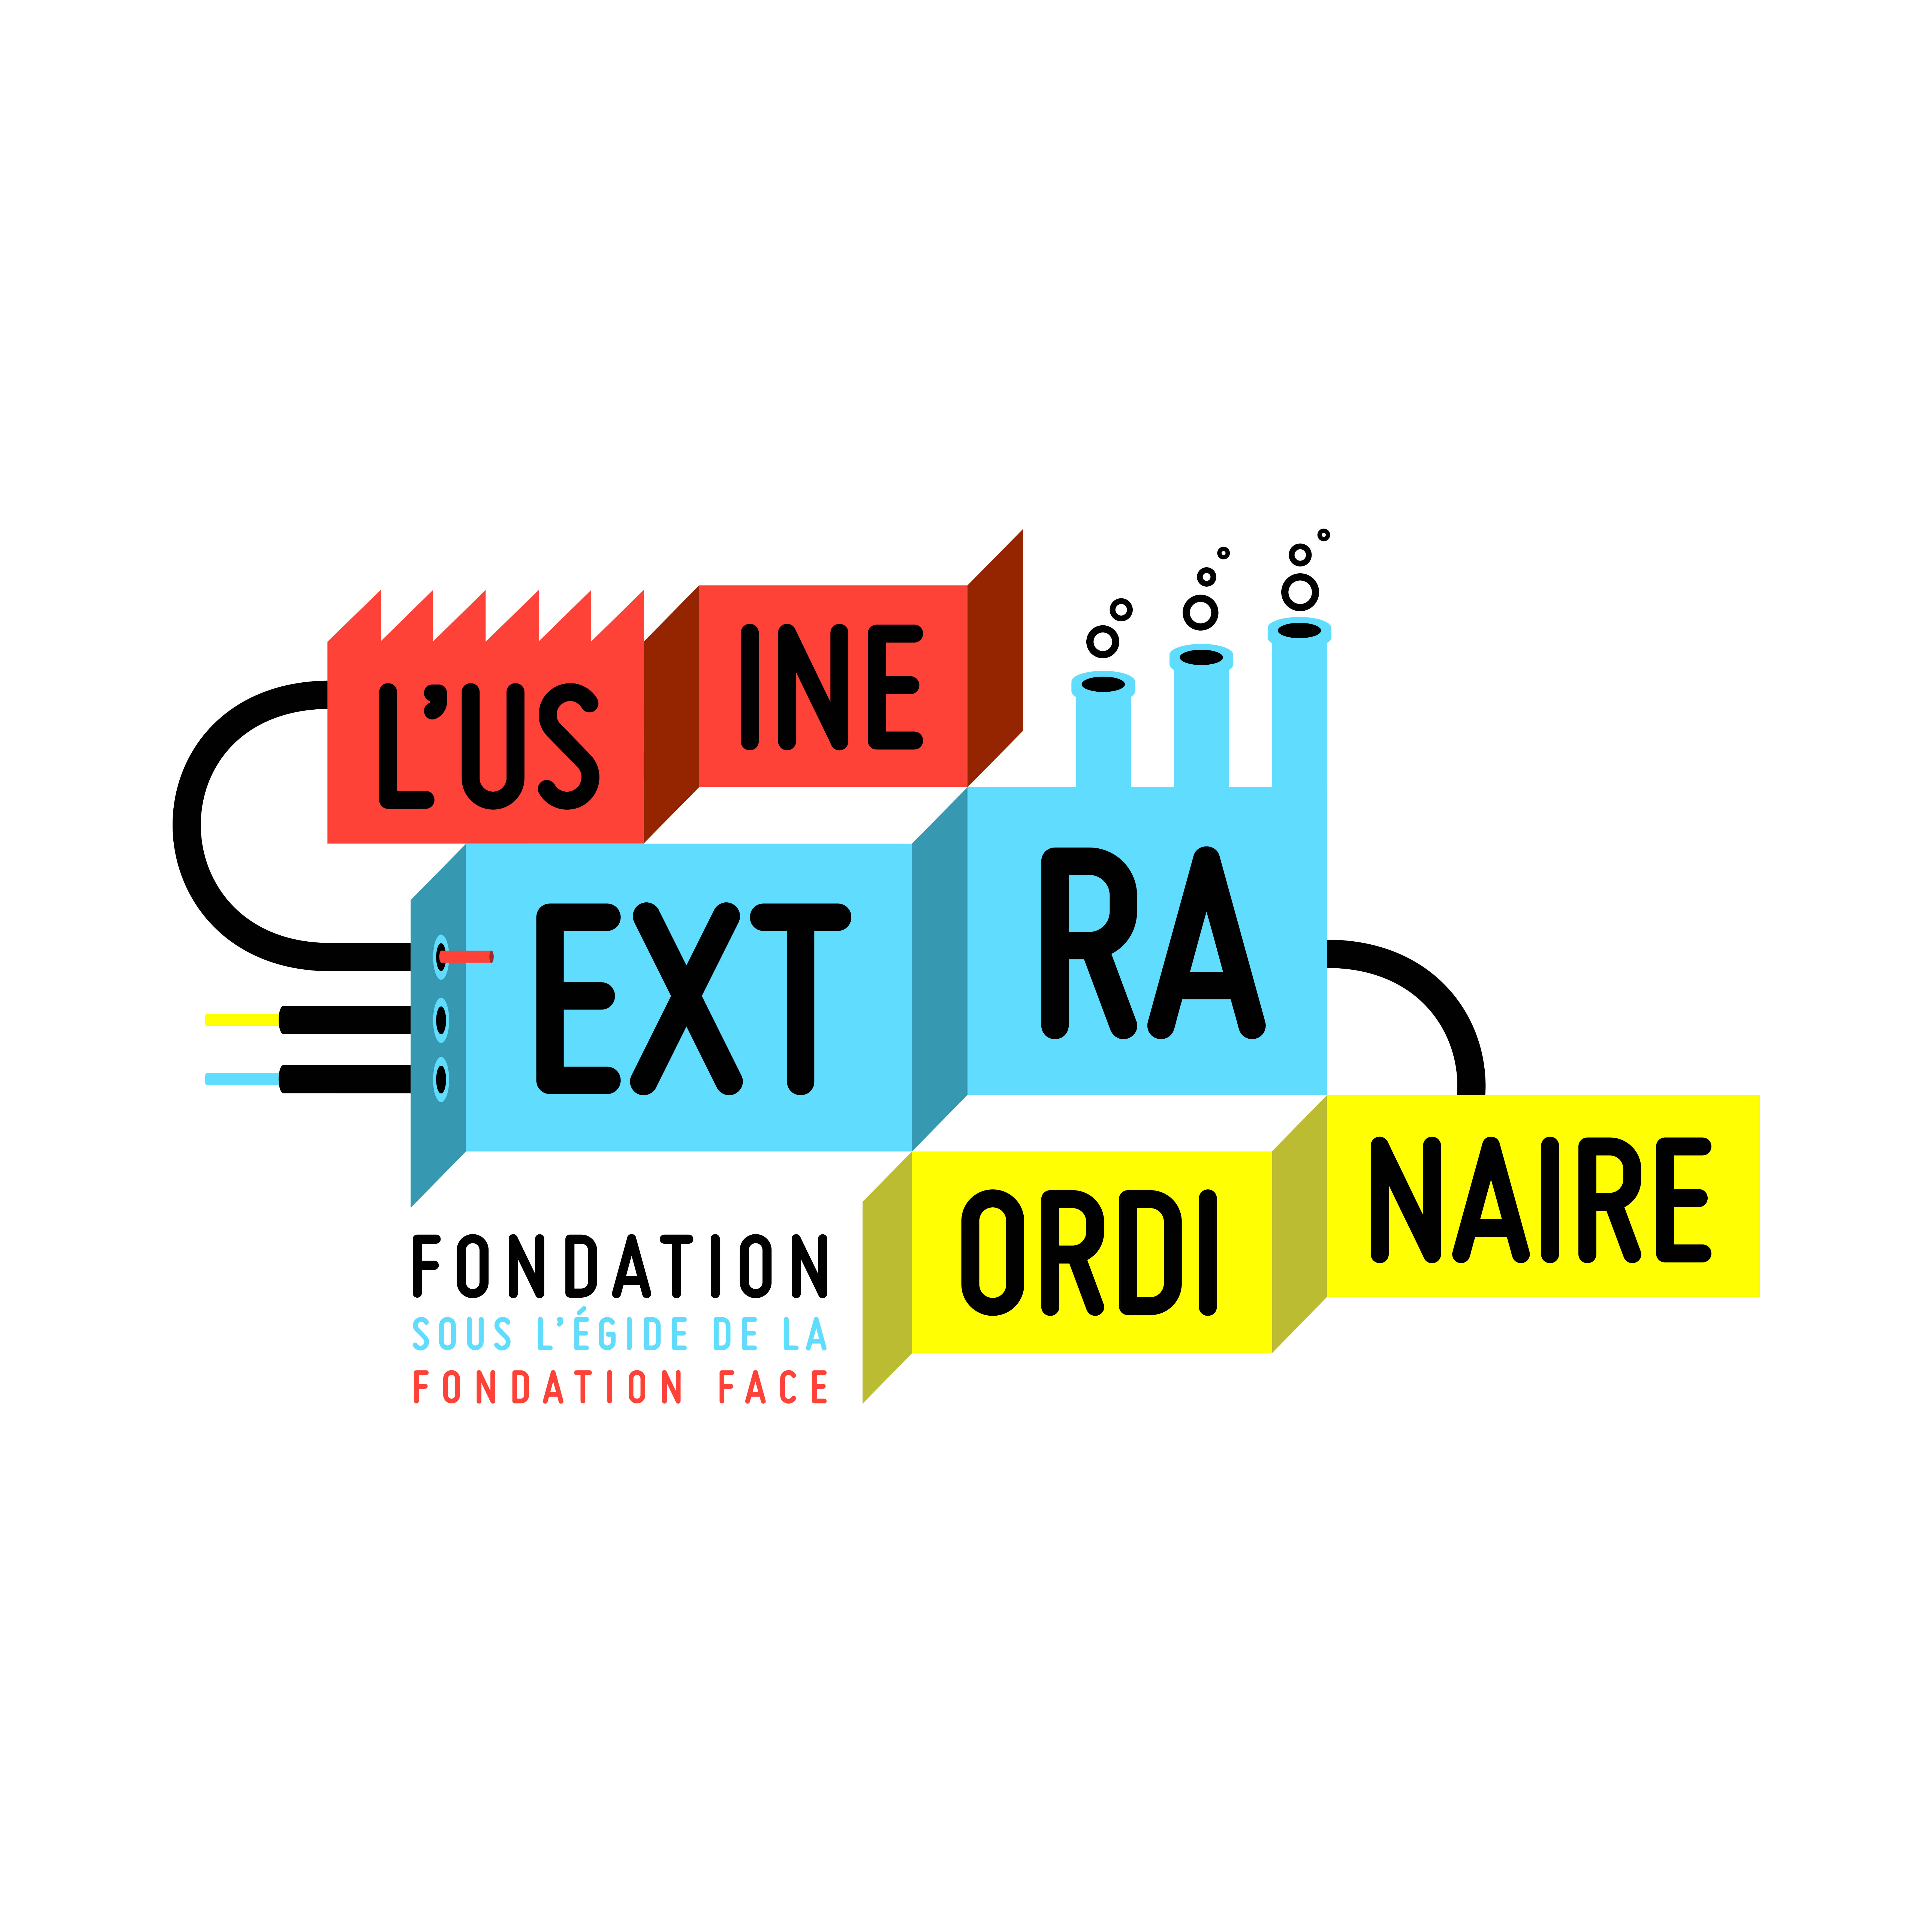 Association - FONDATION L'USINE EXTRAORDINAIRE